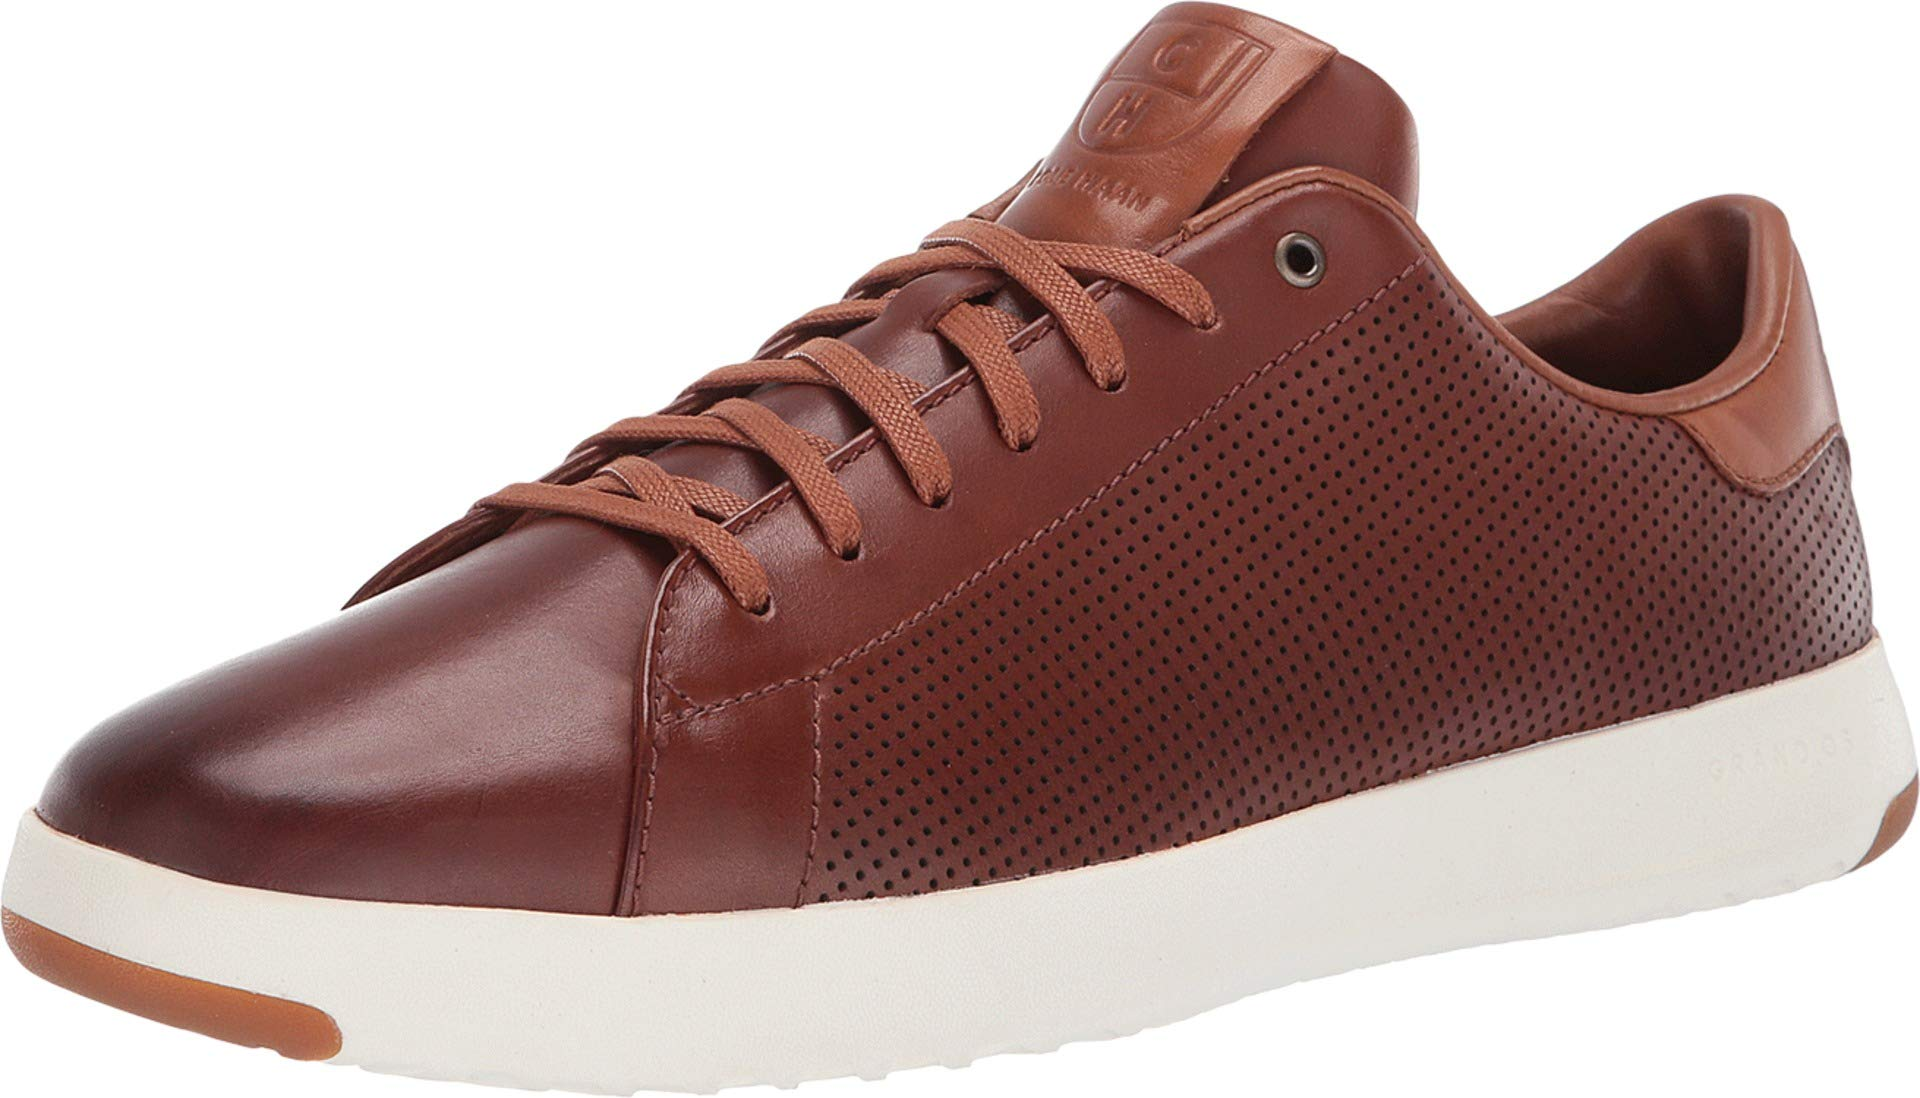 Cole Haan Mens Grandpro Tennis Sneaker 7 Woodbury Handstained Leather by Cole Haan (Image #1)